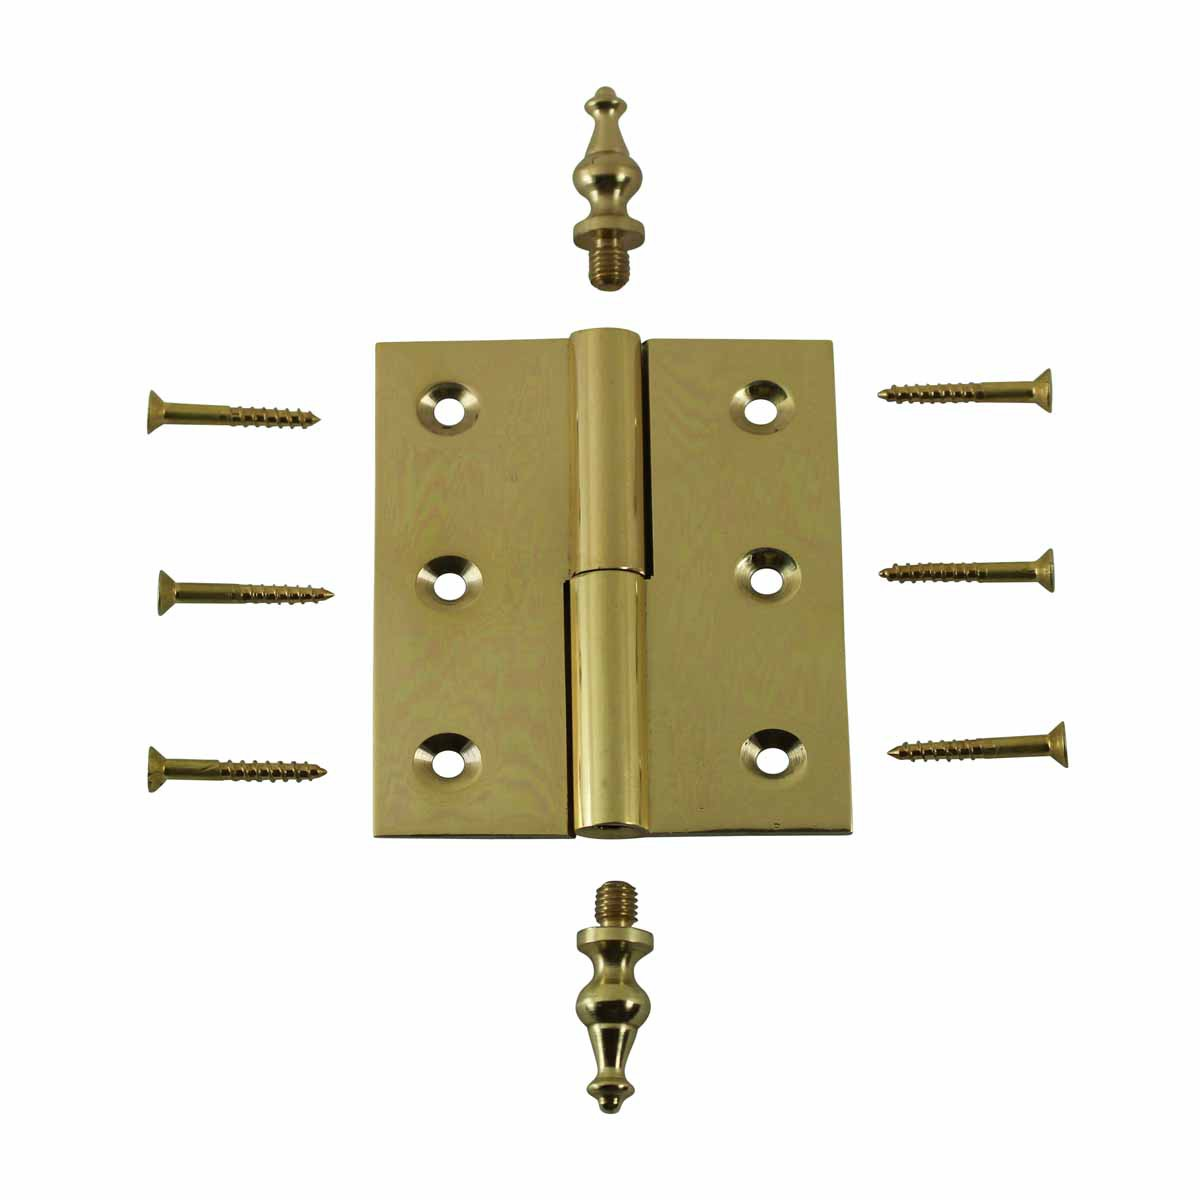 Lift Off Right Brass Cabinet Hinge 2 x 2.5 Temple Tip Door Hinges Door Hinge Solid Brass Hinge